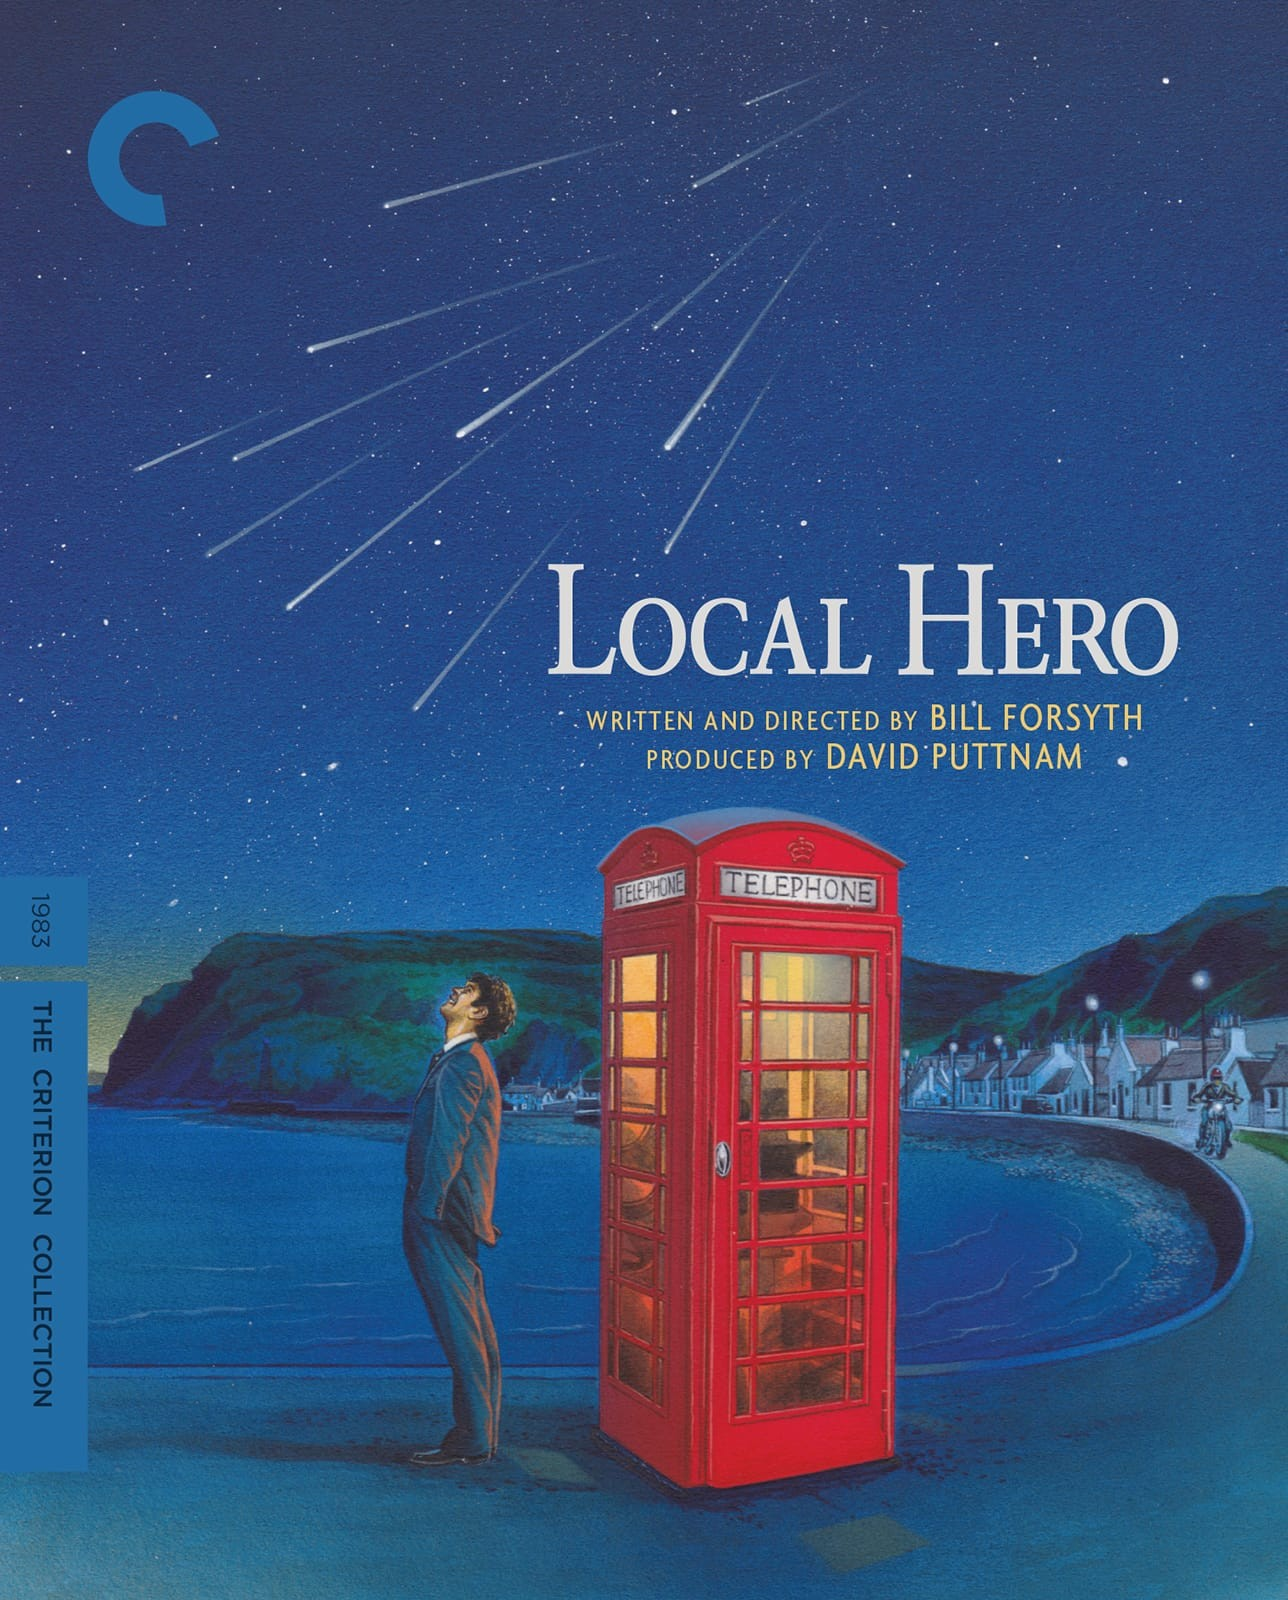 Local Hero (1983) | The Criterion Collection